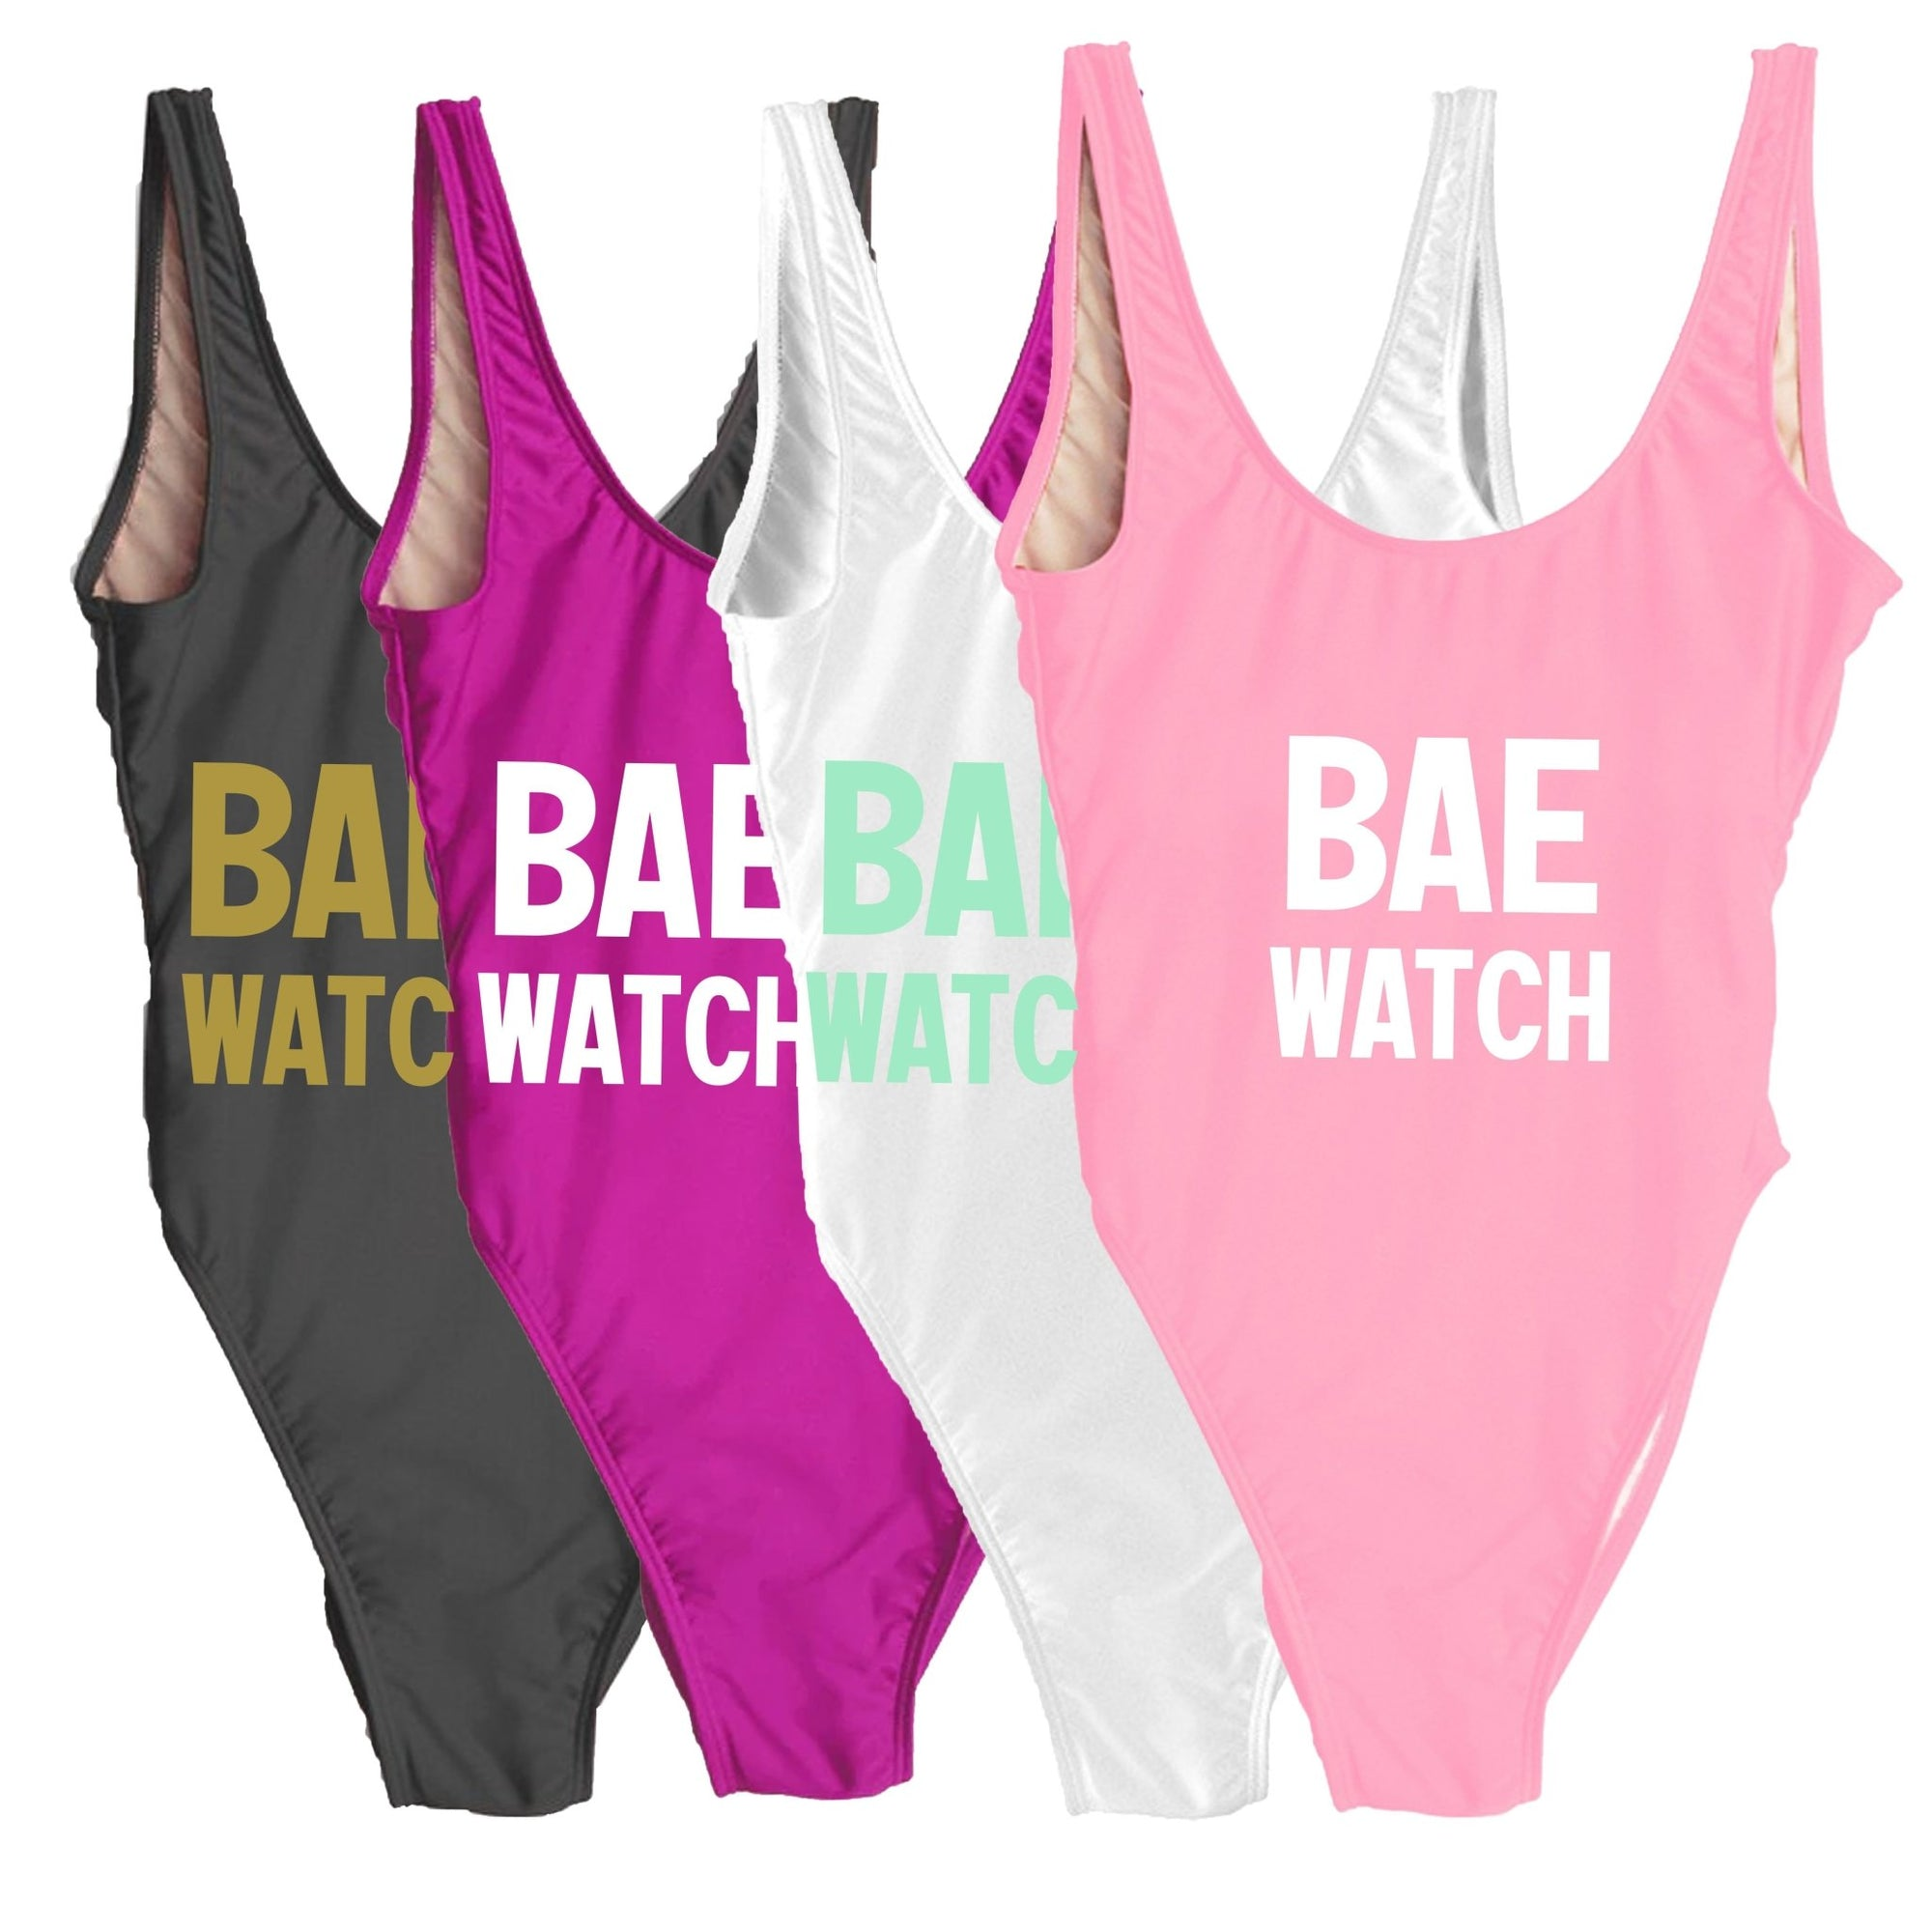 Bae Watch Swimsuit - Sprinkled With Pink #bachelorette #custom #gifts